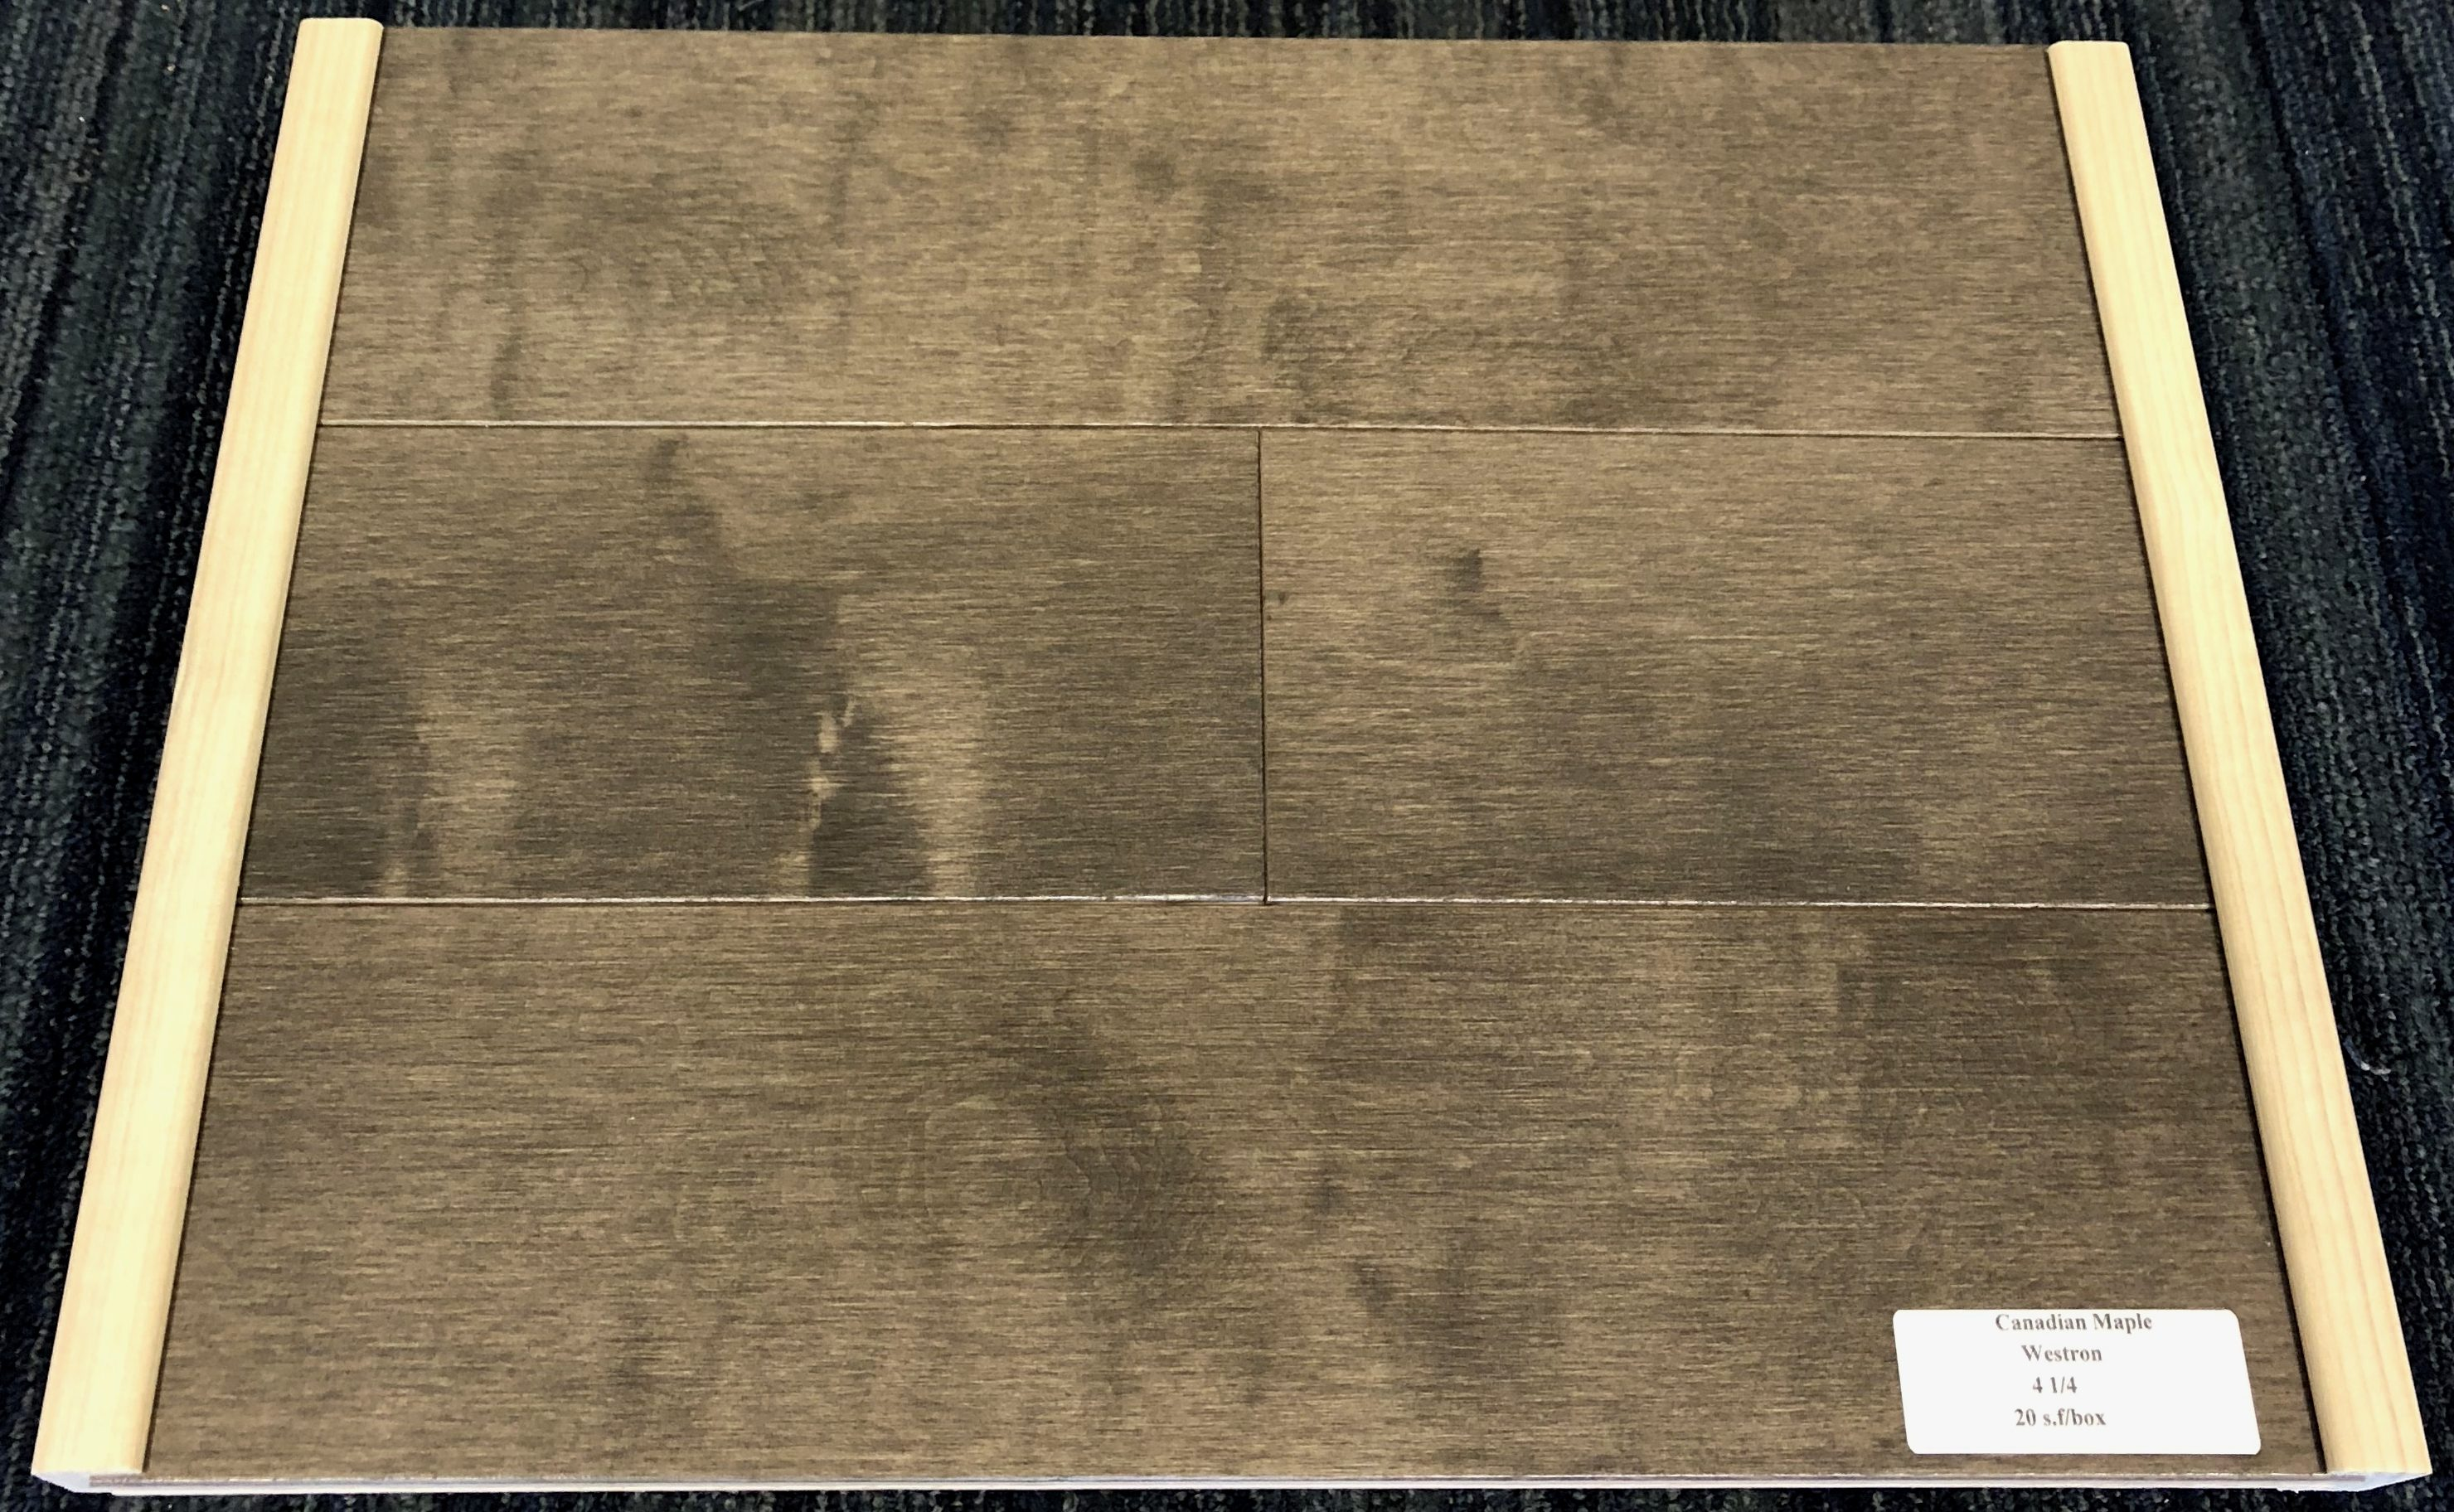 Western Wickham Maple Domestic Hardwood Flooring Image